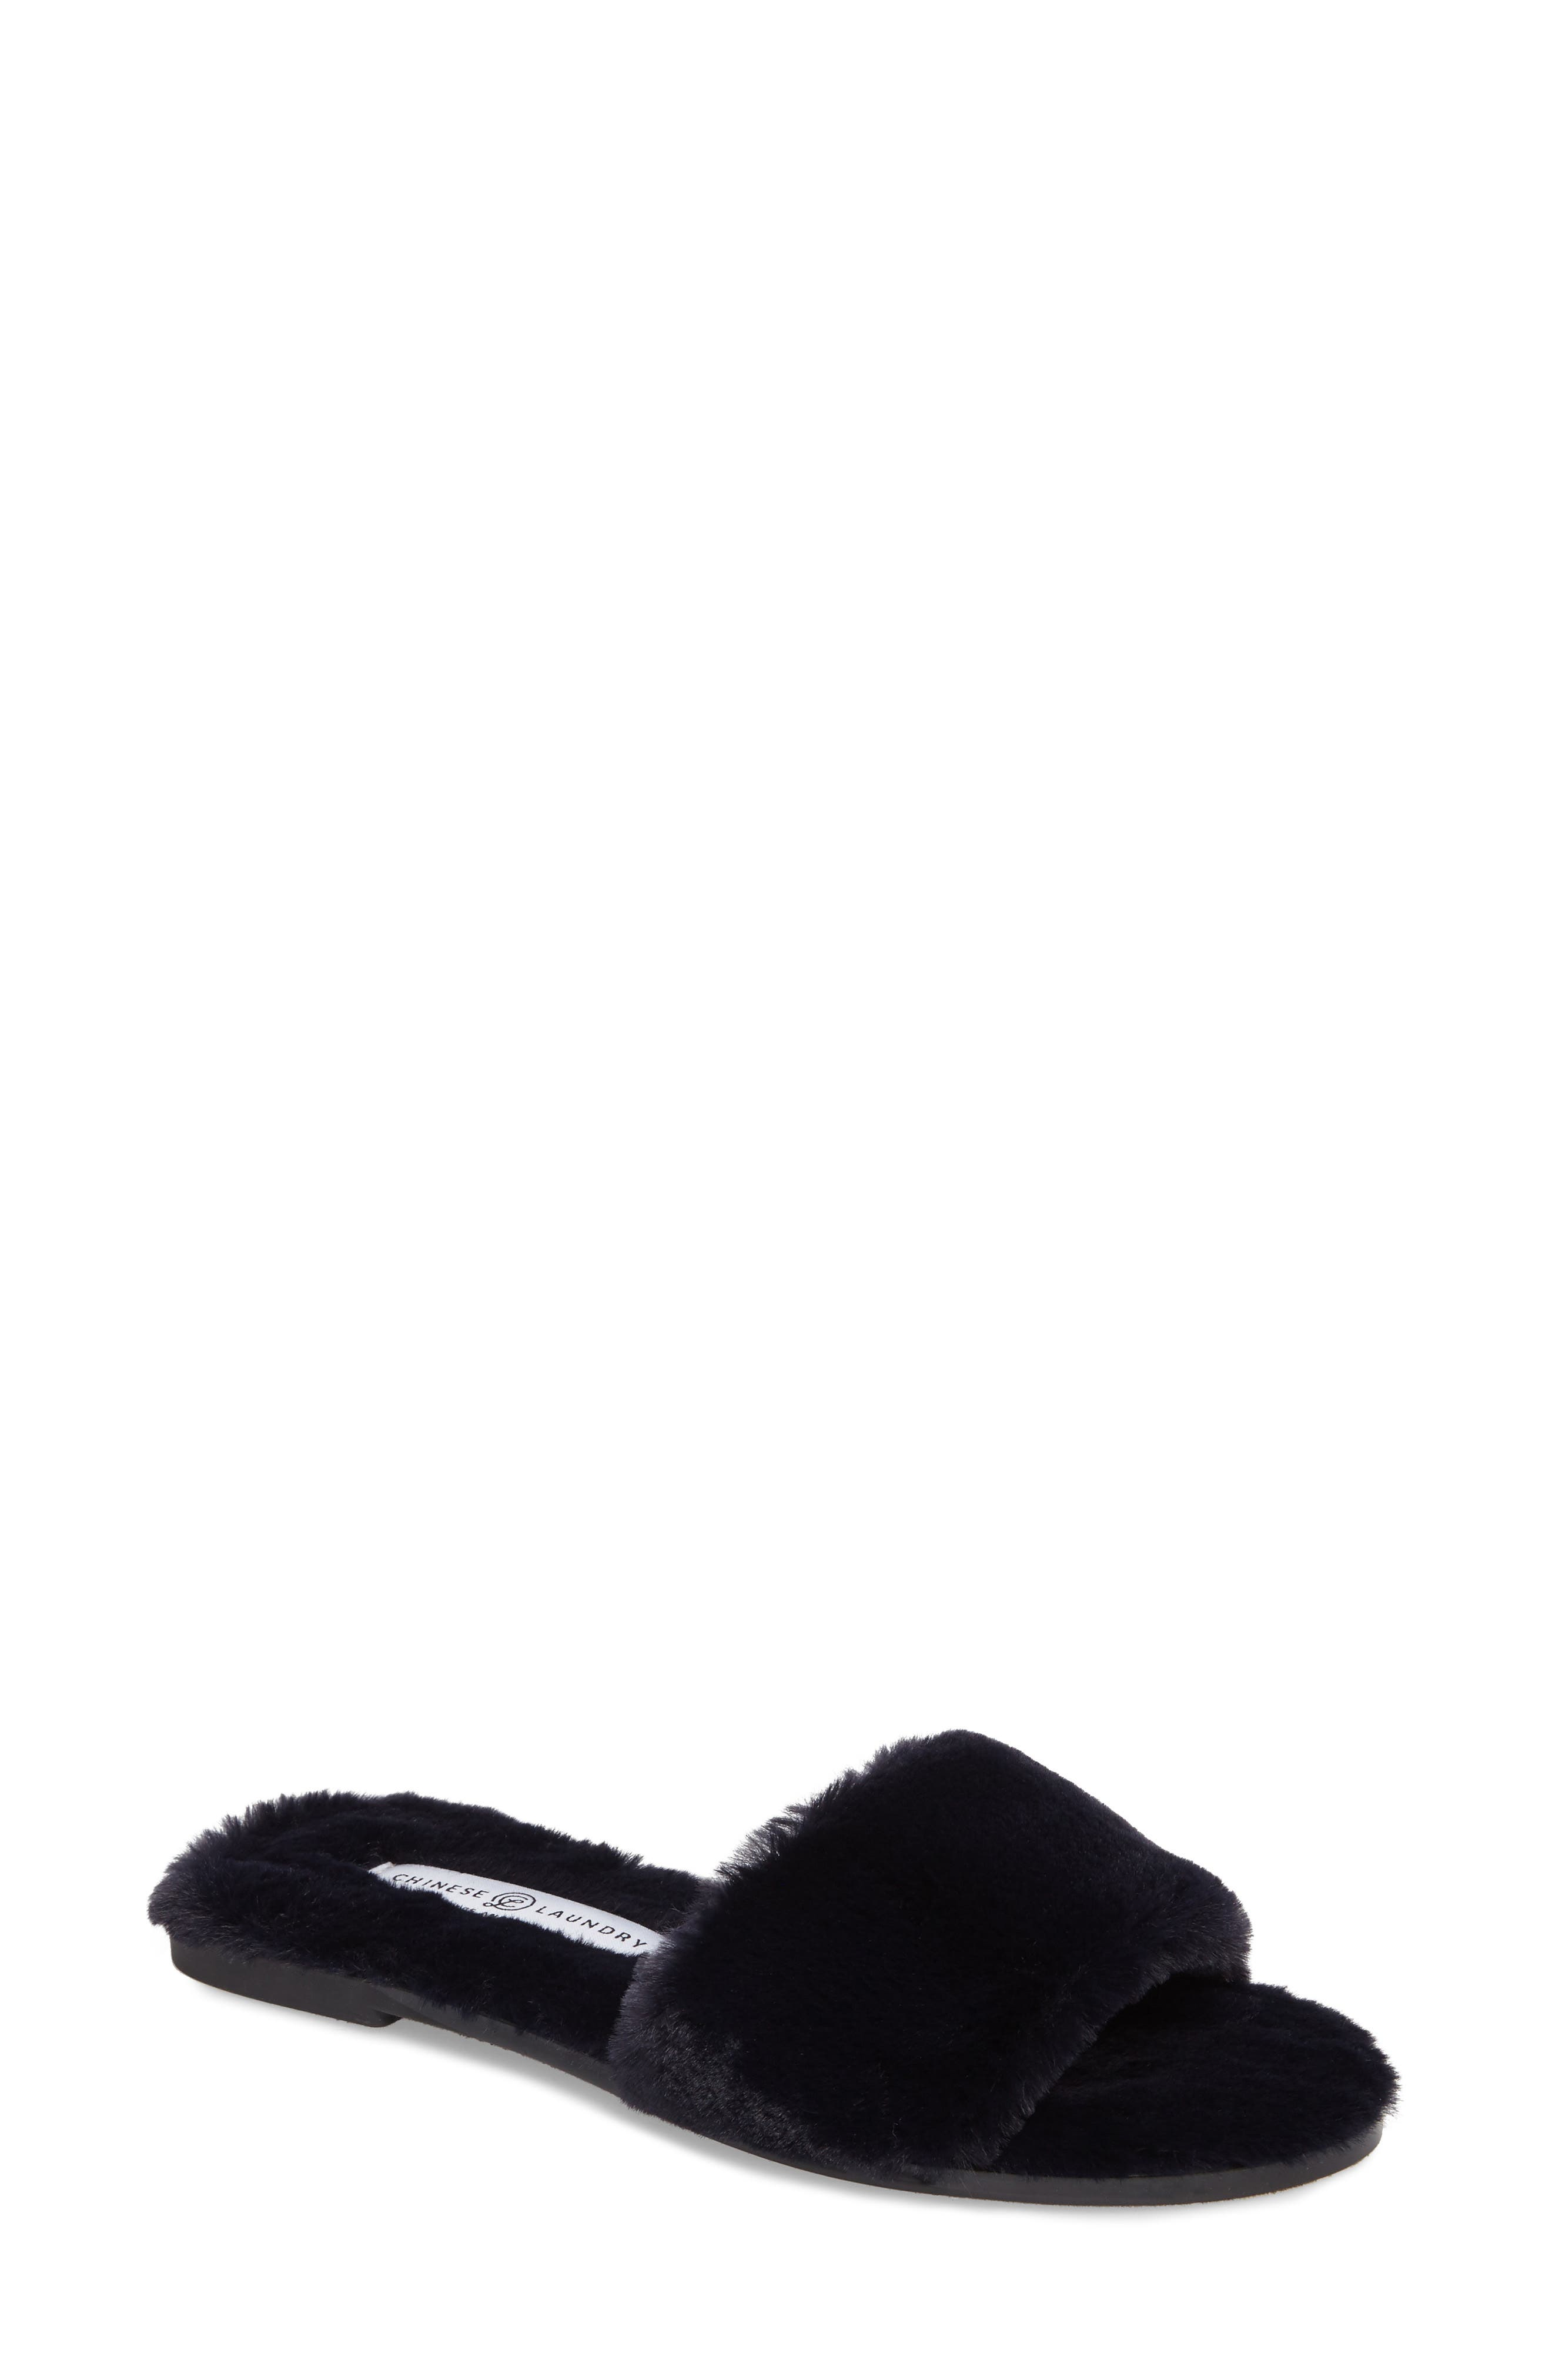 Alternate Image 1 Selected - Chinese Laundry Mulholland Faux Fur Slide Sandal (Women)